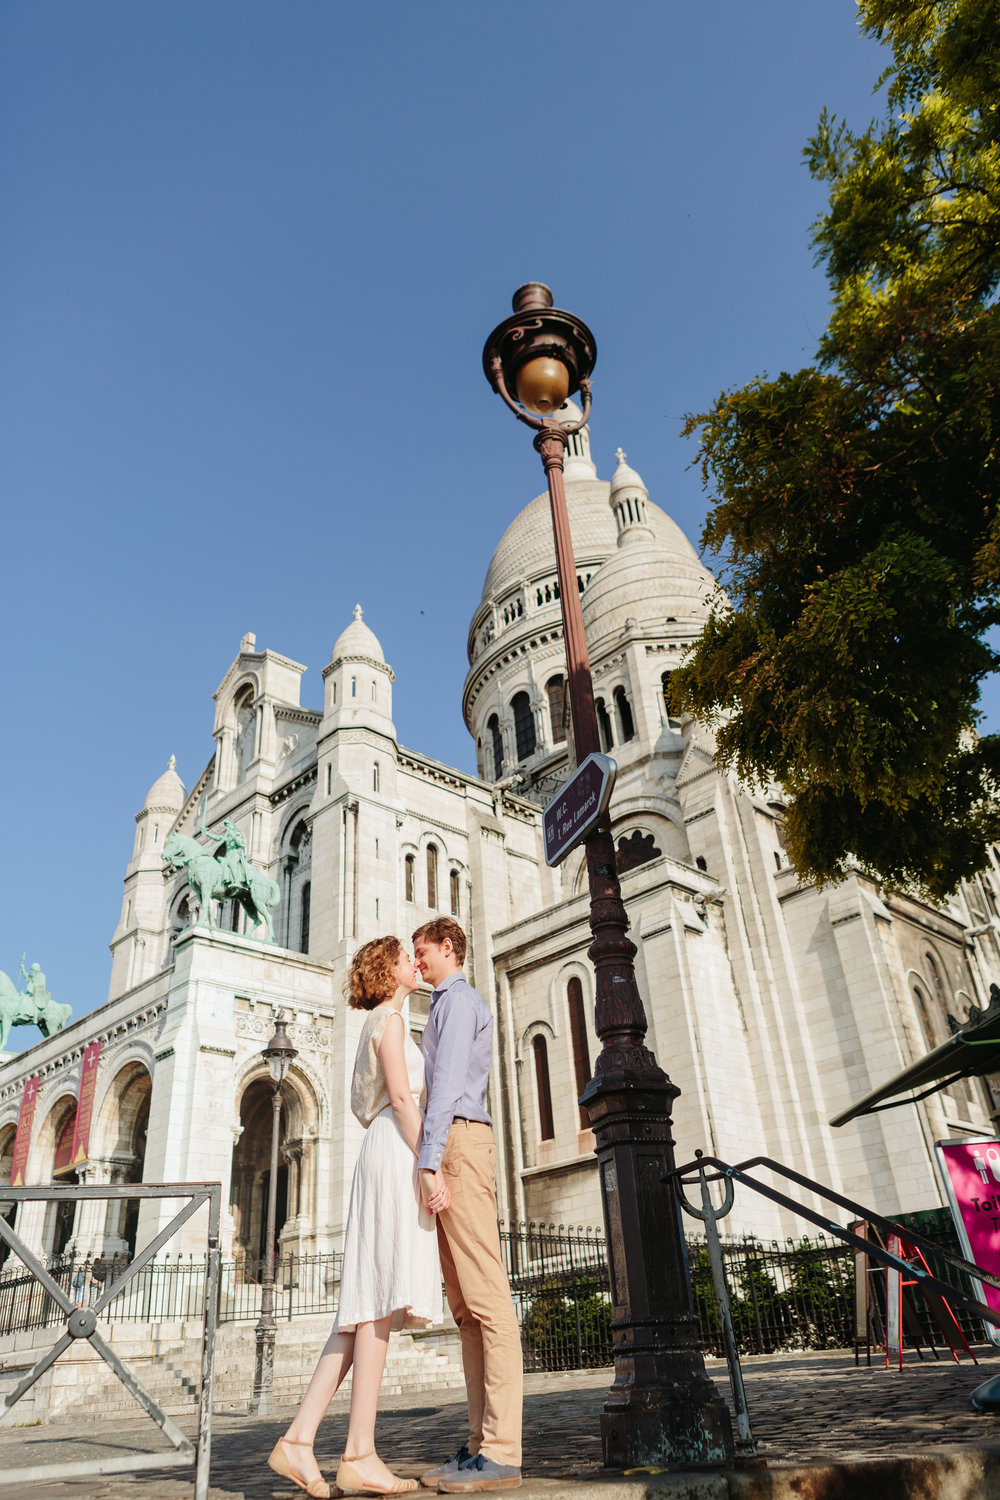 Couple in love holding hands by Sacre Coeur Cathedral at Montmartre captured by Paris Photographer Federico Guendel IheartParisFr